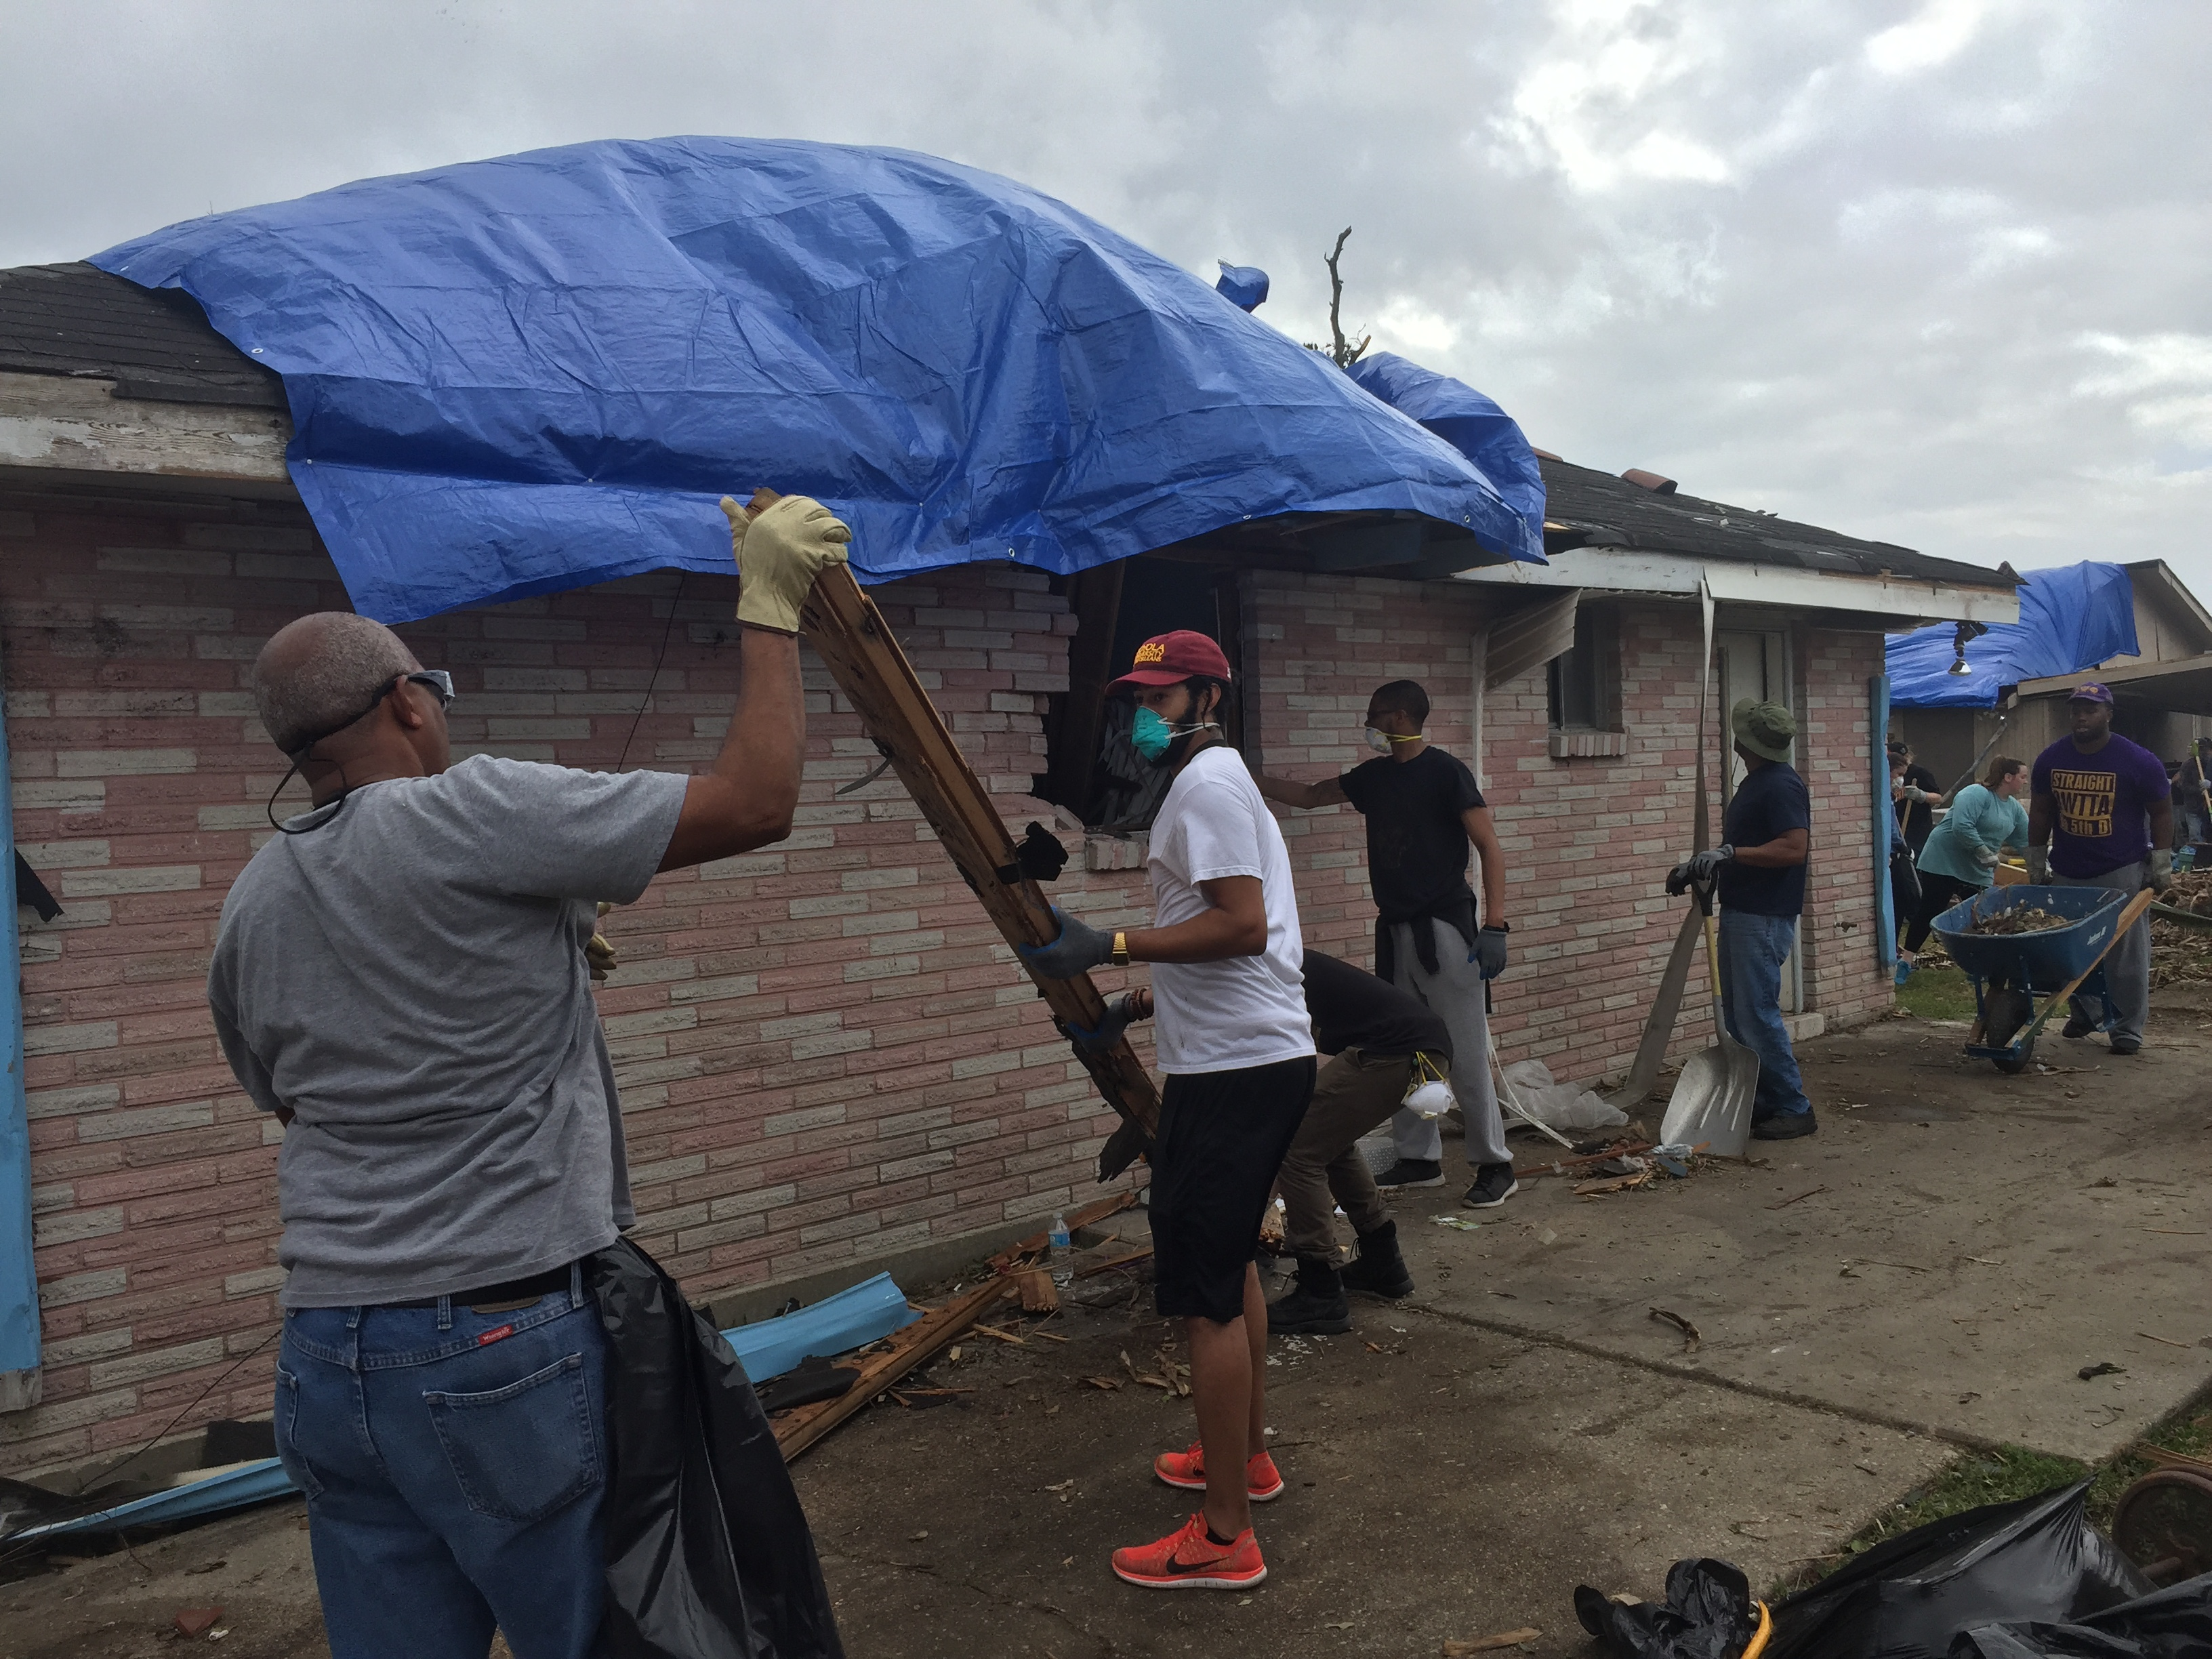 Loyola alumnus and Alpha Phi Alpha member, Eddie Murray A'15, helps remove debris from Mims' bedroom window. Alpha Phi Alpha organized a group of volunteers to help clear debris Photo credit: Natalie Hatton